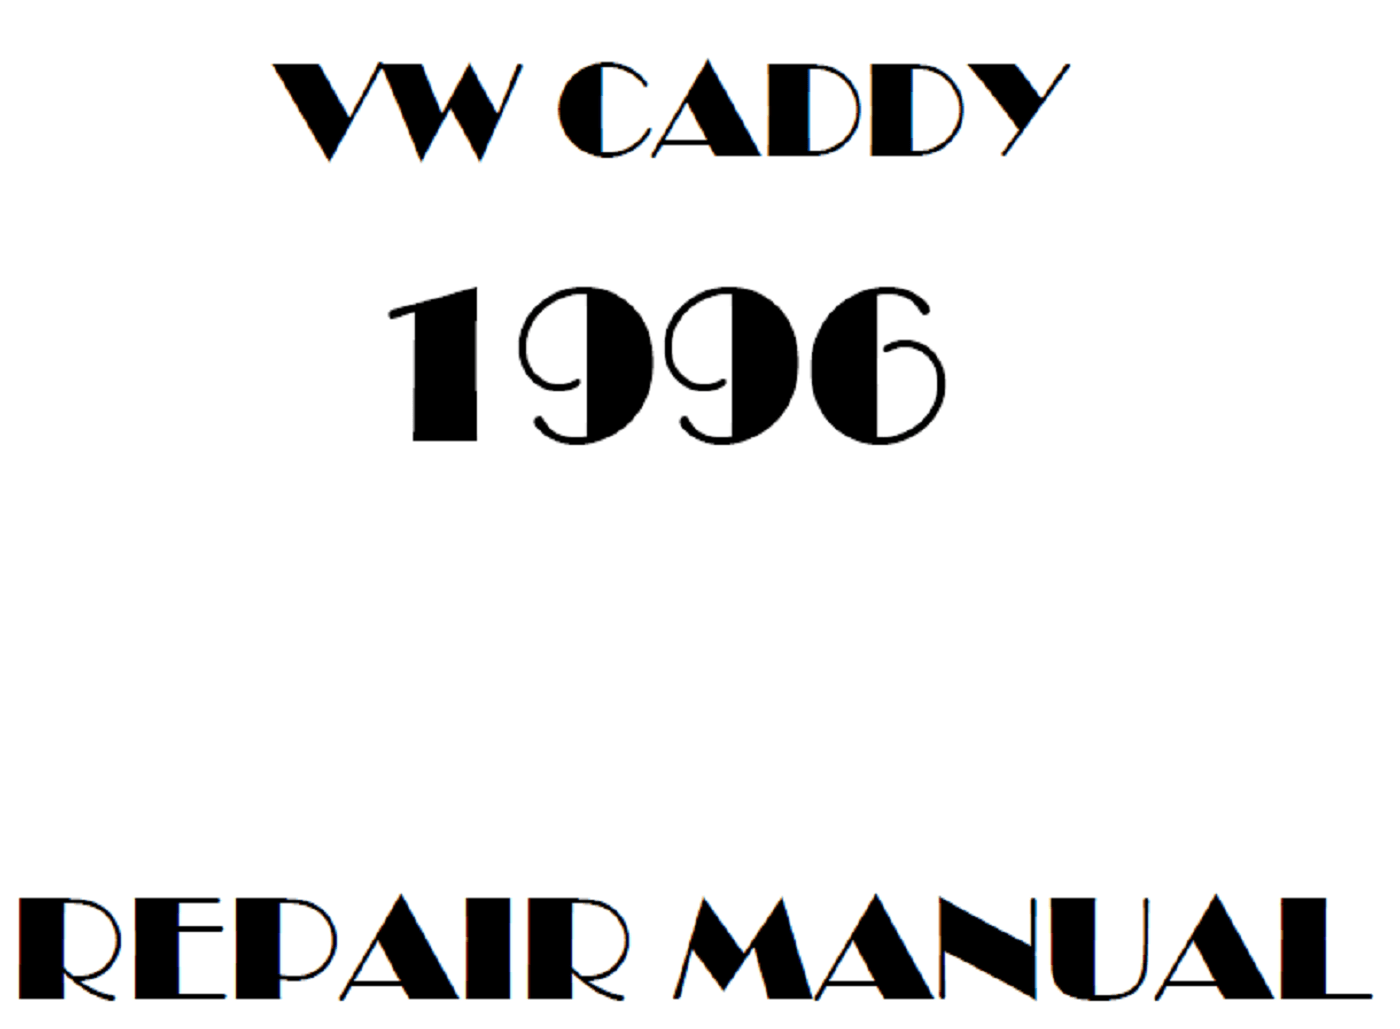 1996 Volkswagen Caddy repair manual